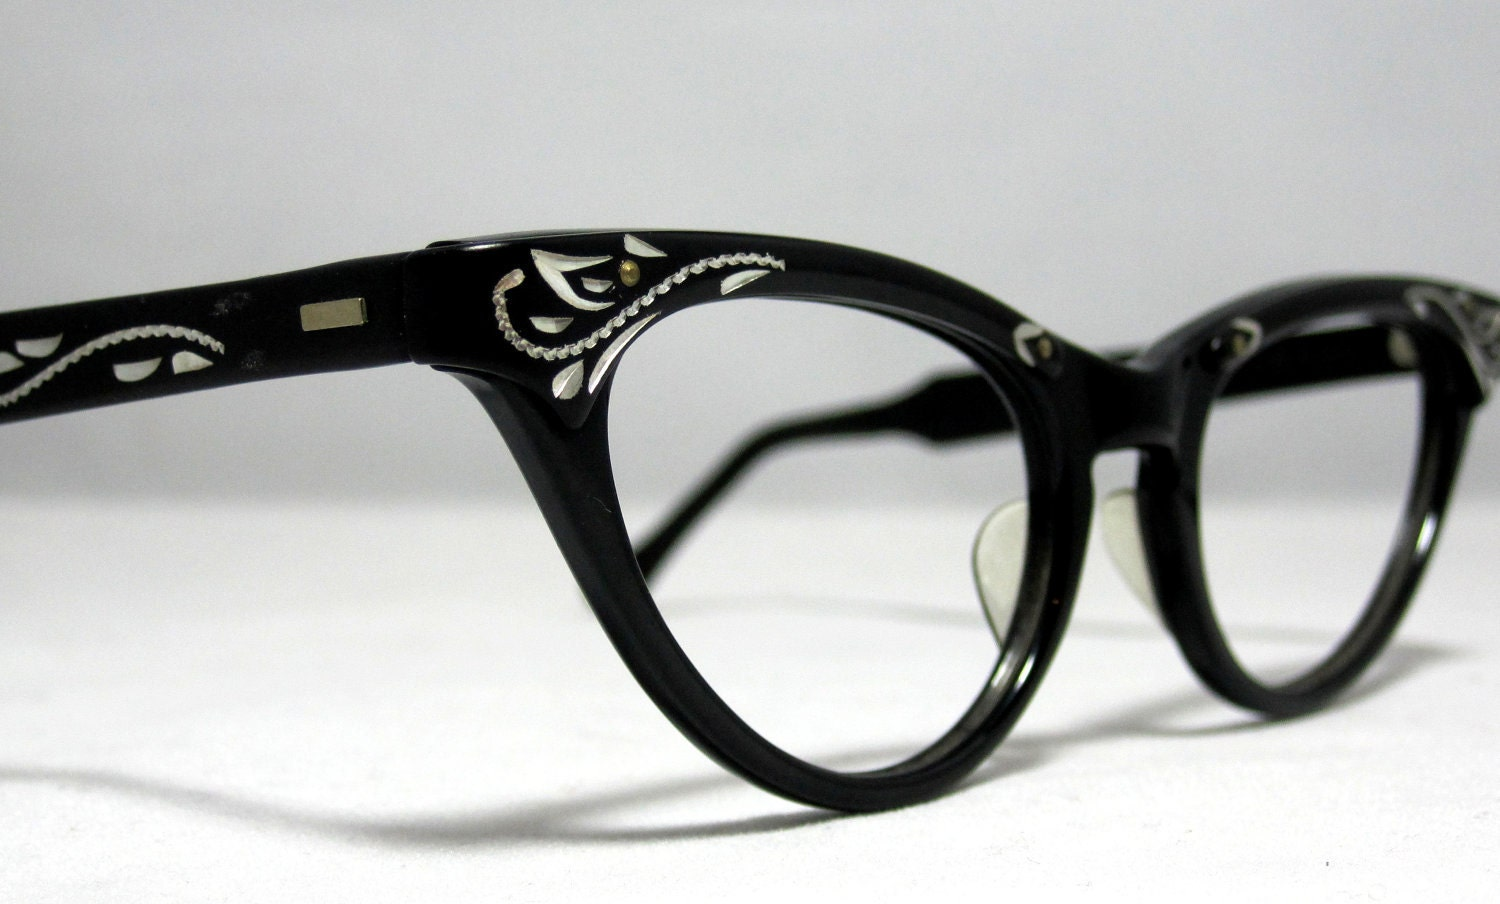 Vintage Cat Eye Glasses Frames. Black and Silver with Etched